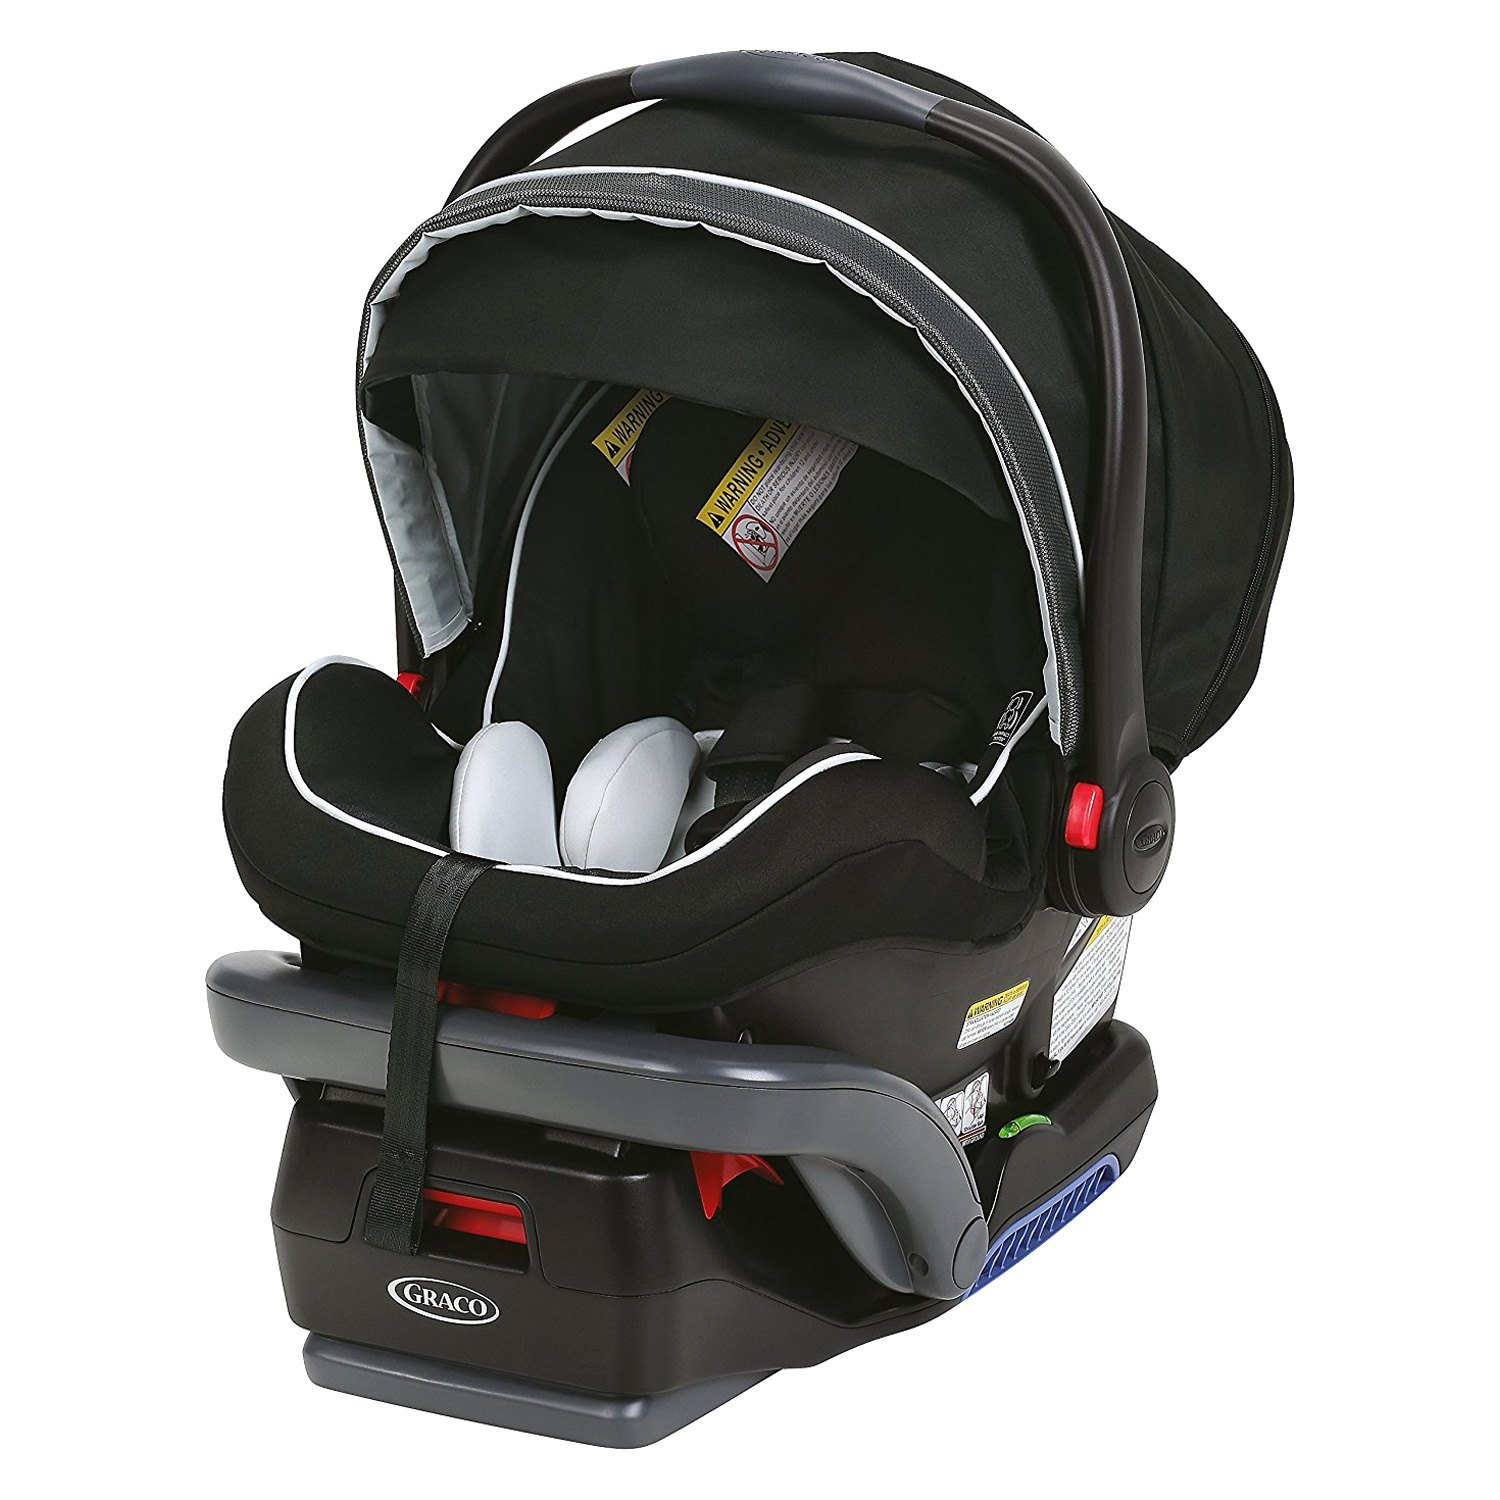 Graco Baby Snugride Snuglock Elite Infant Car Seat